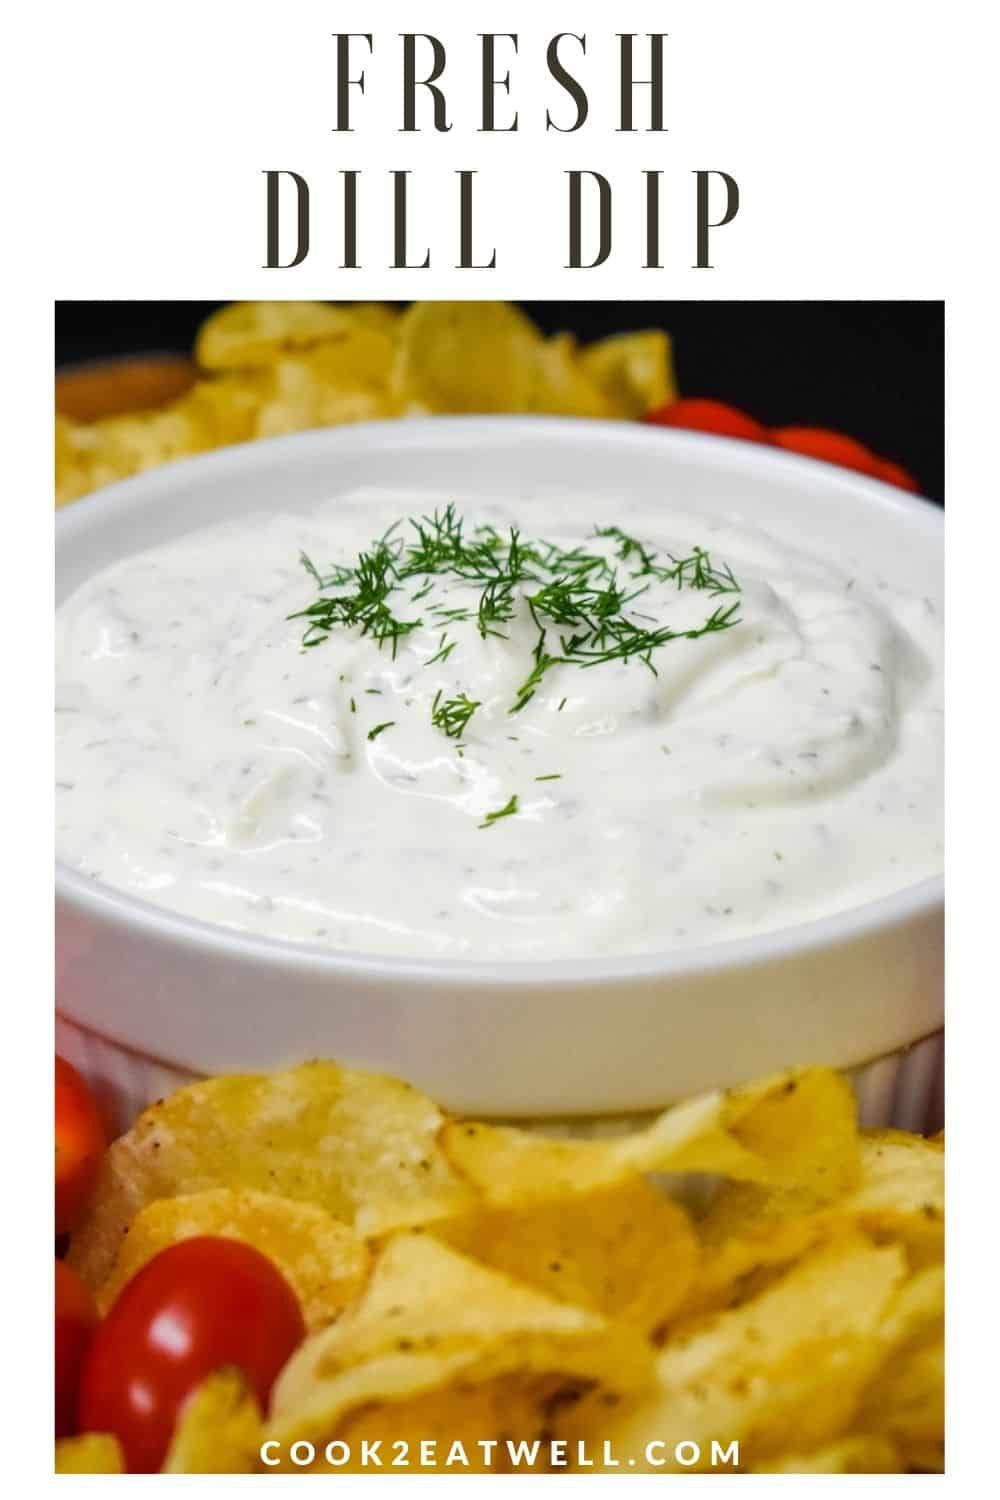 This Dill Dip Recipe Is Quick And Easy To Make This Creamy Dip Is Made With Sour Cream Cream Cheese And Flav Dill Dip Dill Dip Recipes Fresh Dill Dip Recipe